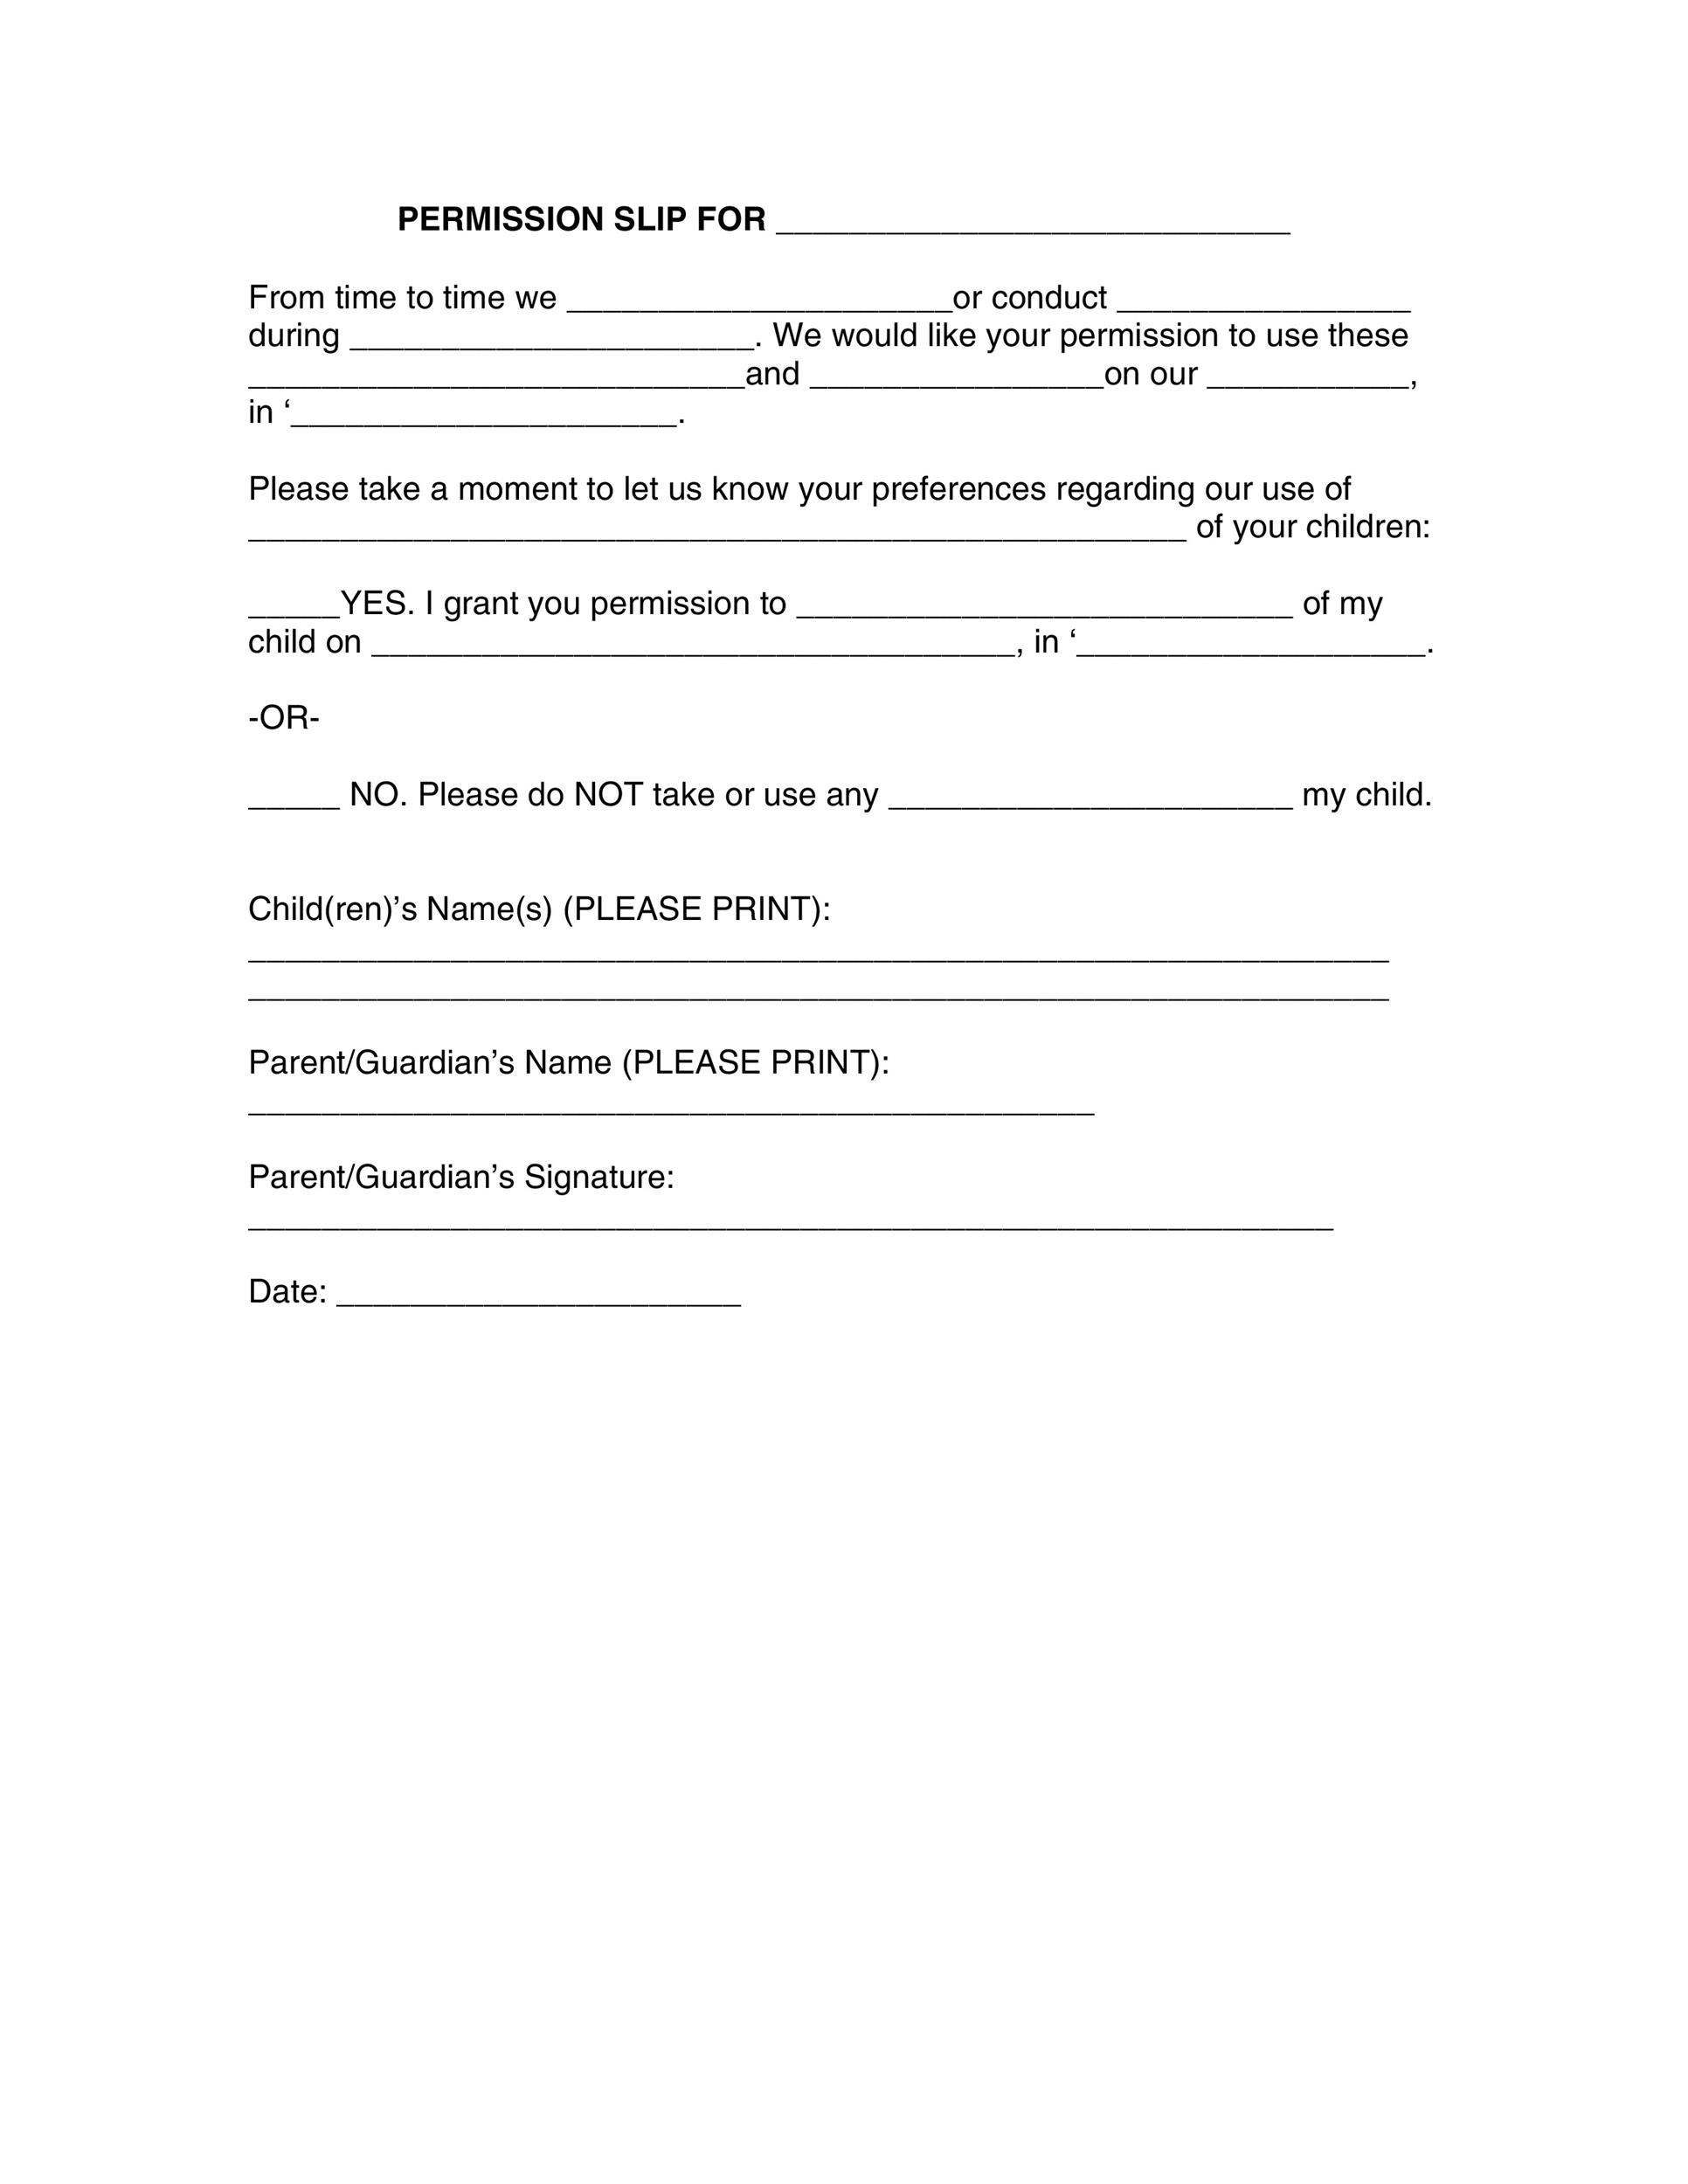 Permission slip templates field trip forms printable permission slip 18 altavistaventures Images